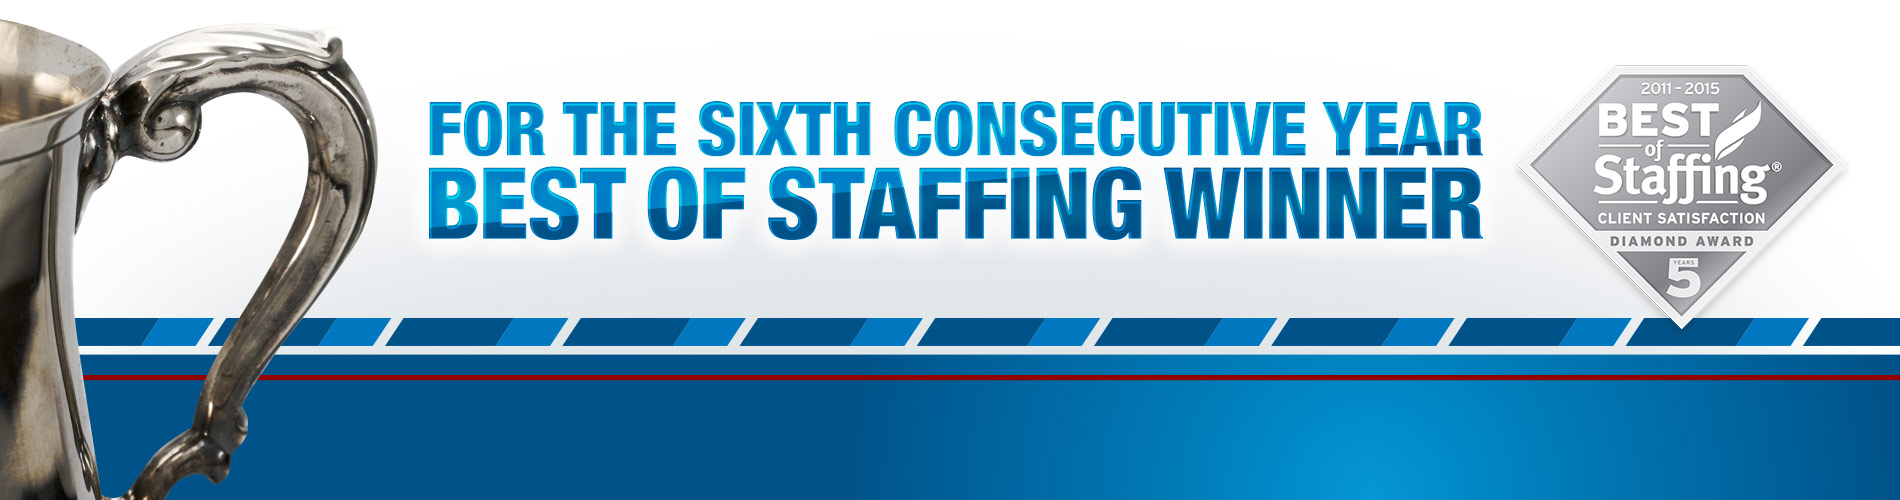 jobs in oregon city or express staffing employment agency best of staffing home page banner image